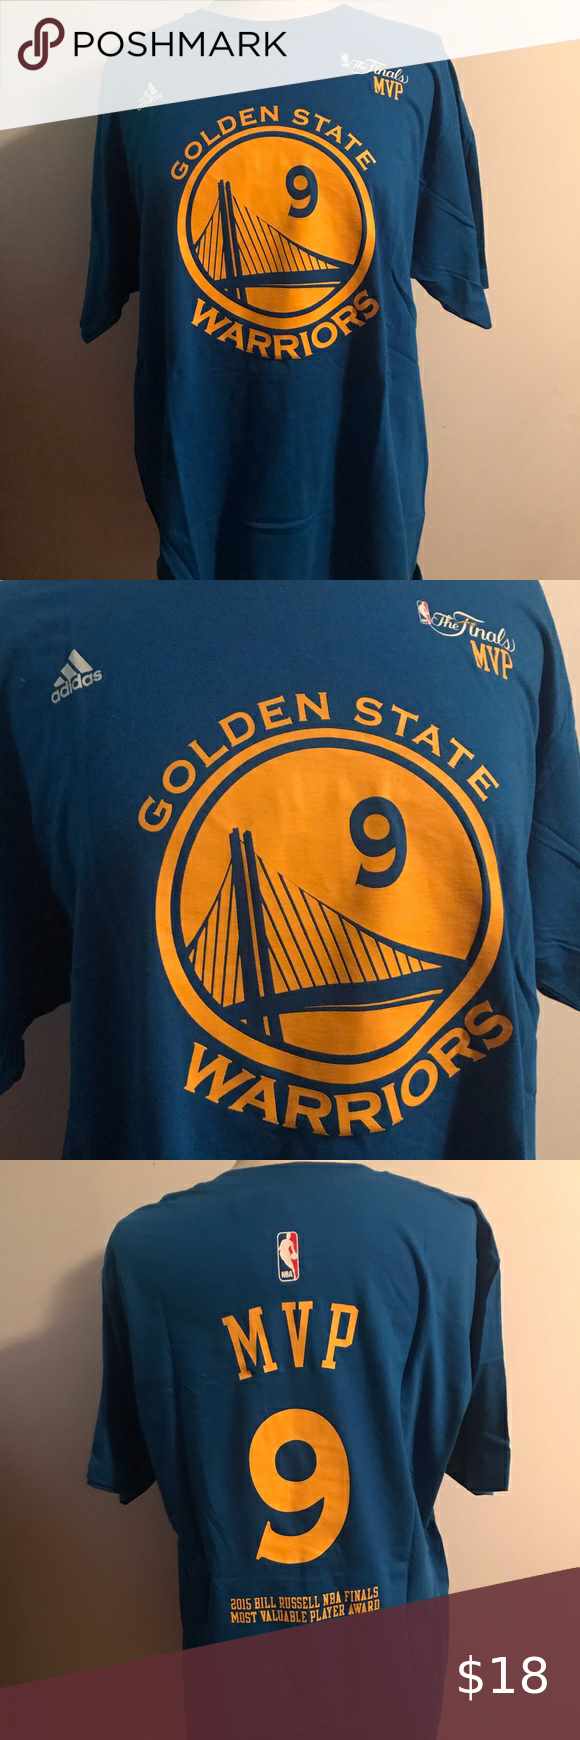 NWT Golden State Warriors Championship Tee NWT in 2020 (With images)   Golden state warriors ...